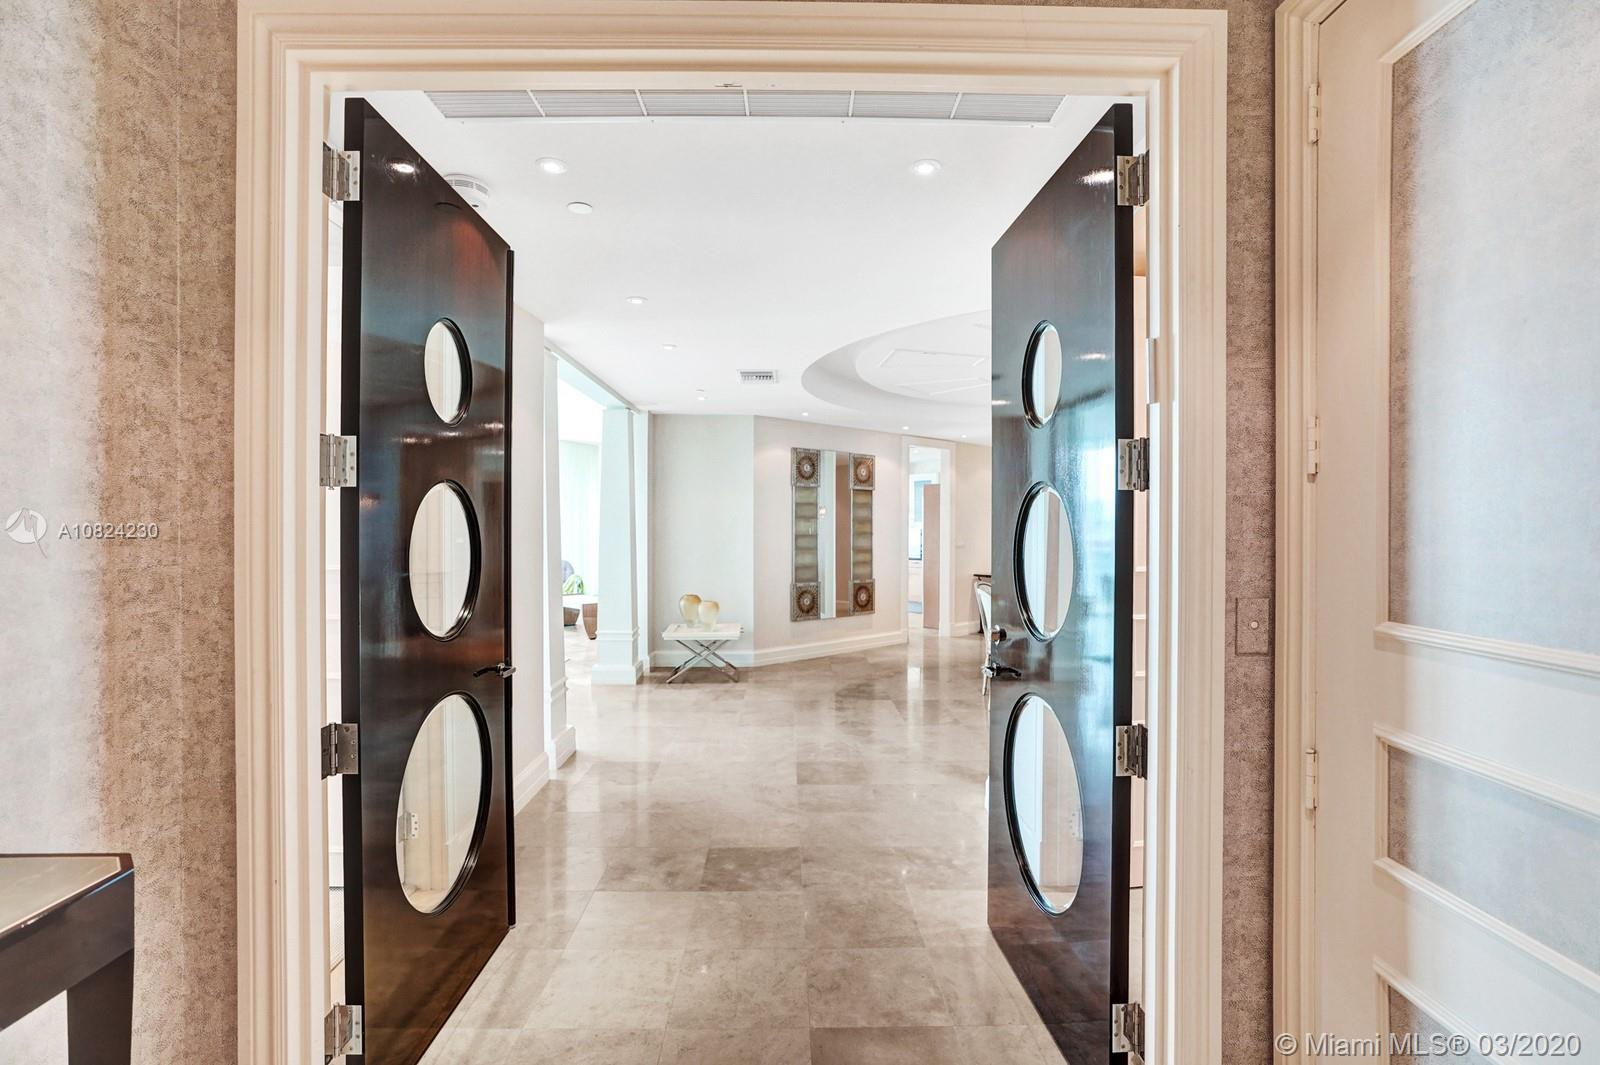 Can I brag?Resplendent views on a daily basis will greet you from this impressive four bedroom 6 bathroom home in the sky. High Ceilings, upgraded kitchen, and a full housekeeper's suite will impress even the pickiest of buyer's. Views of Miami's skyline, Miami's famous sunsets and endless ocean views are the choice views to have and to hold.The terrace that is outside the master bath is one of my FAVORITE things about this stunning condo. Imagine putting on face mask at the end of the day, grabbing either a chamomile tea or a glass of wine, and sitting on the balcony right outside your bathroom and taking in the sunset. Truly and experience to come home to at the end of a hard day's work or a great golf game. AND, did I say you have the most wonderful spa services here in Porto Vita?